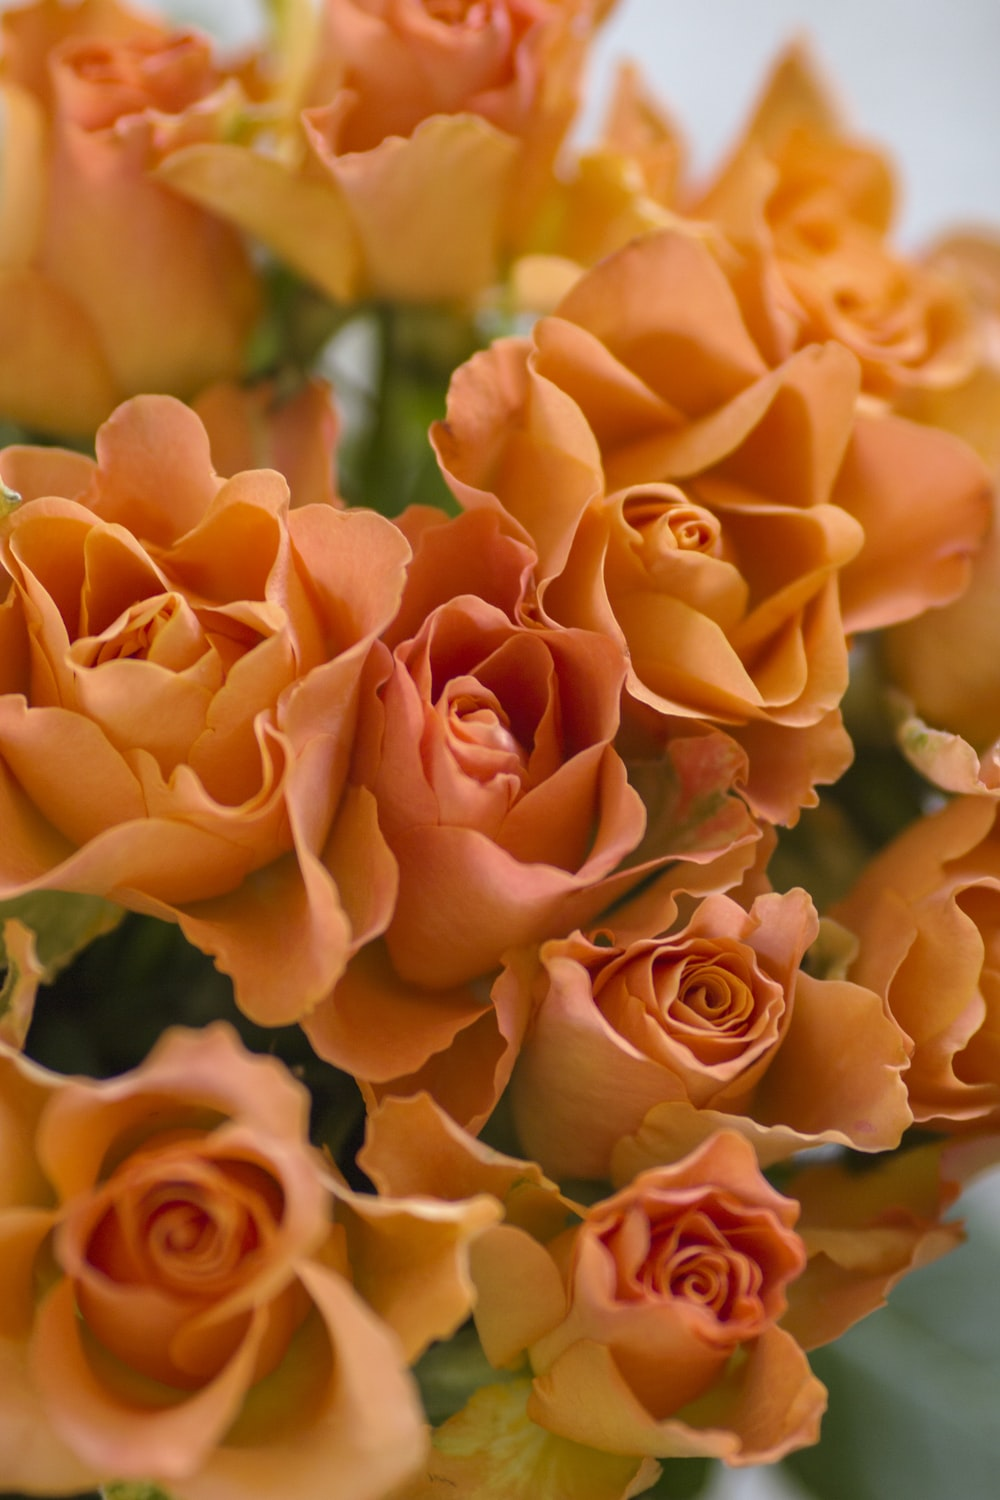 orange roses in close up photography